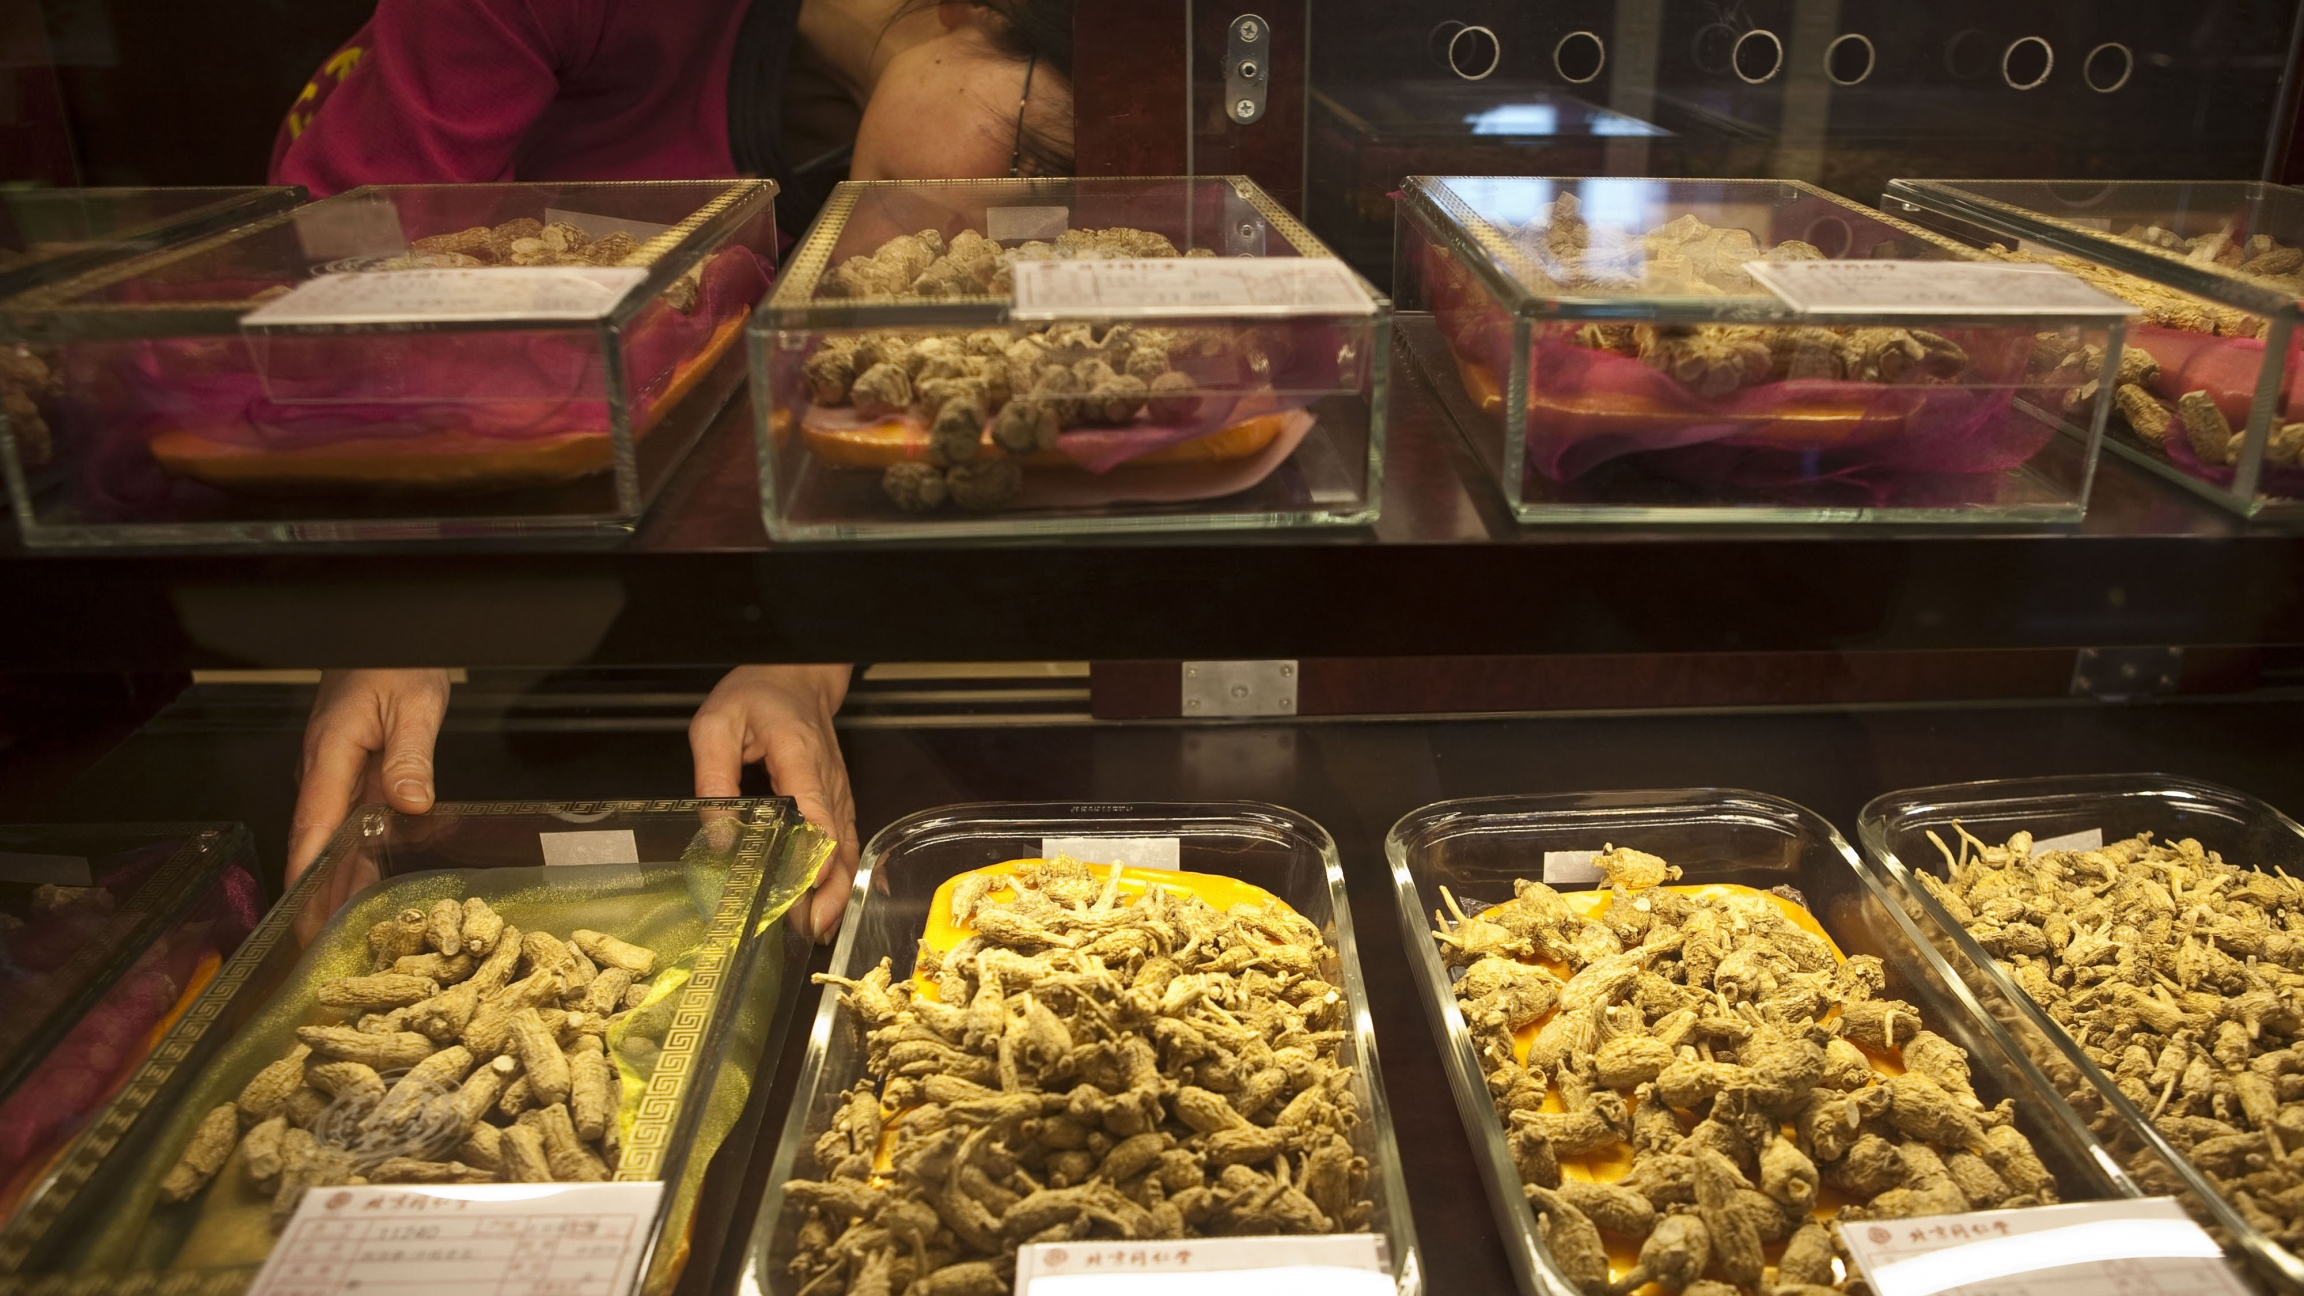 A worker arranges yellow ginseng displays behind glass cases